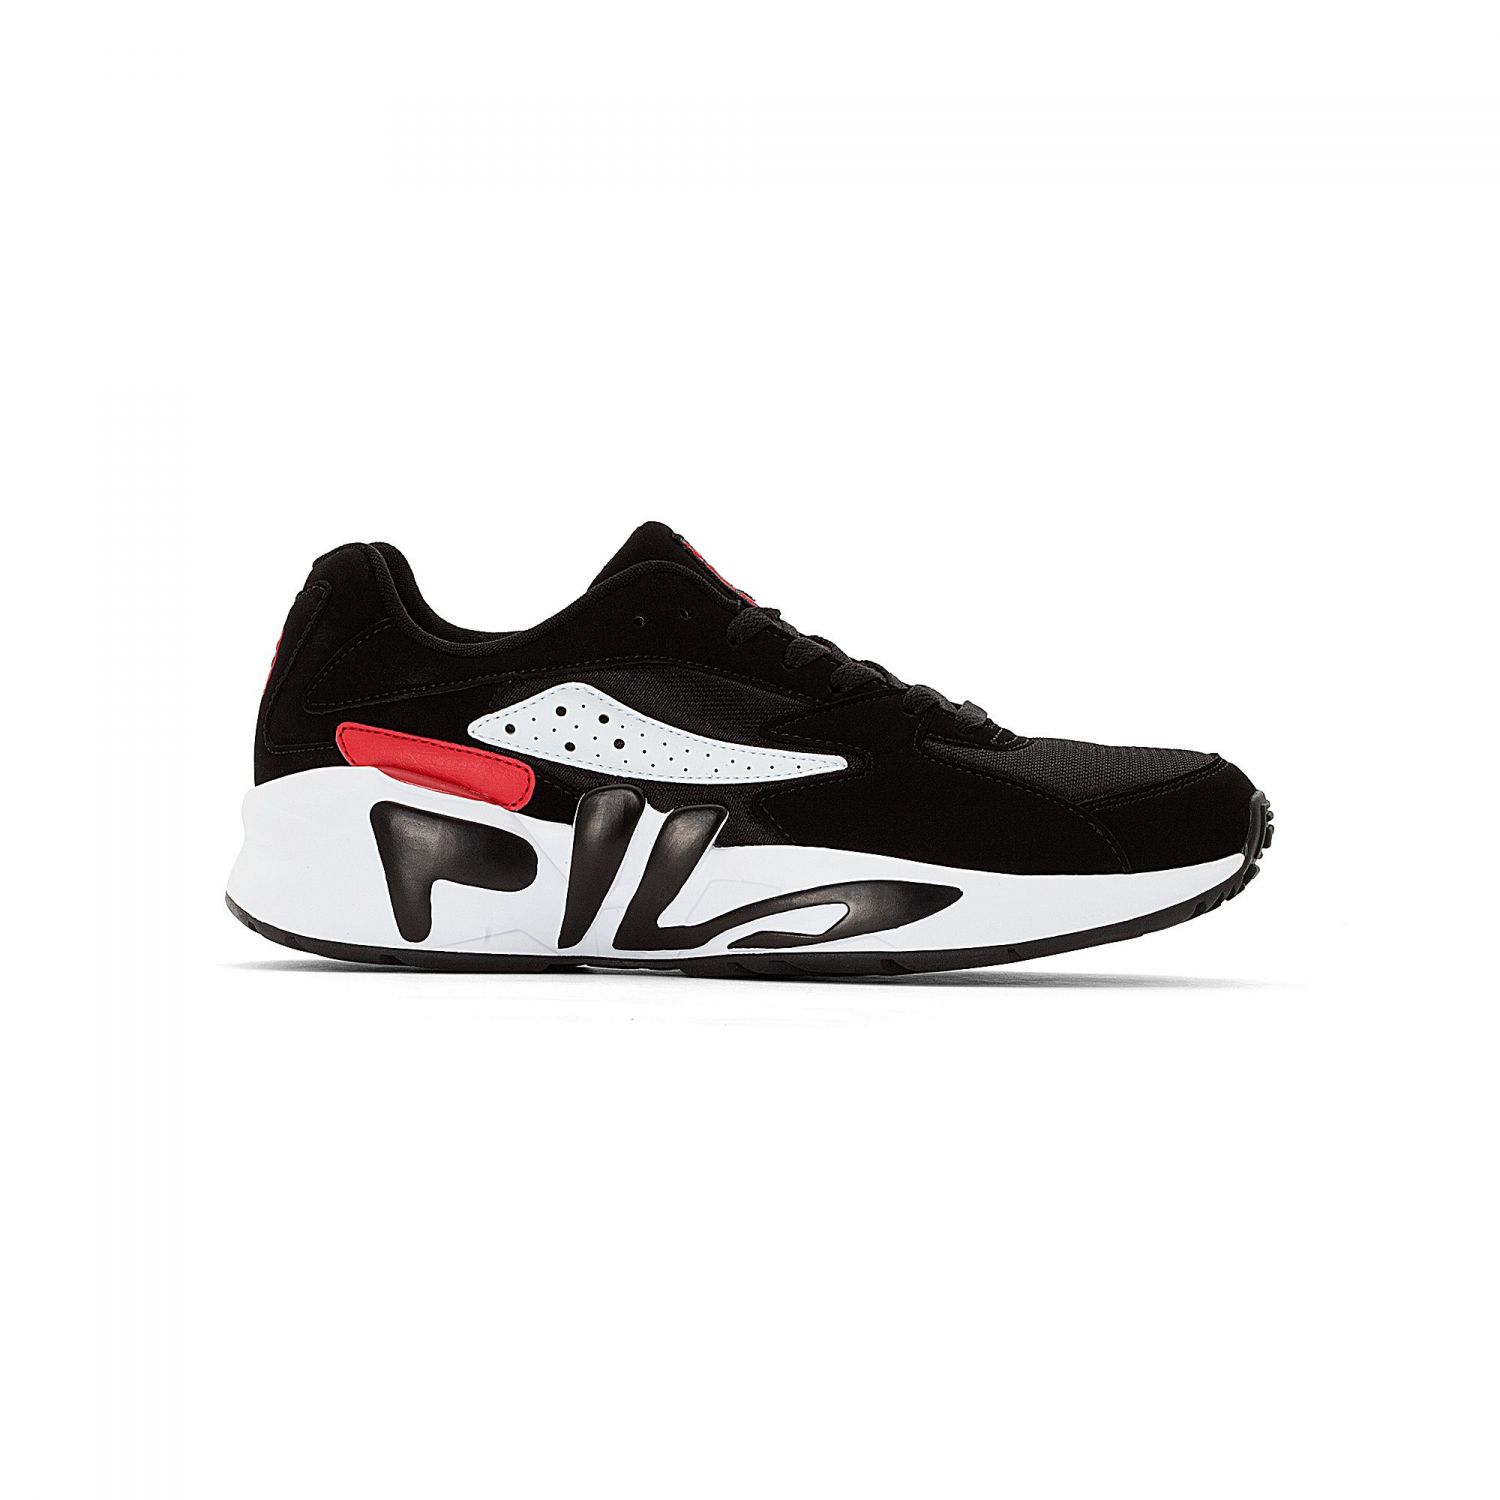 978bcc3a2941 Fila - Mindblower Men black-white - 00014201672627 -...